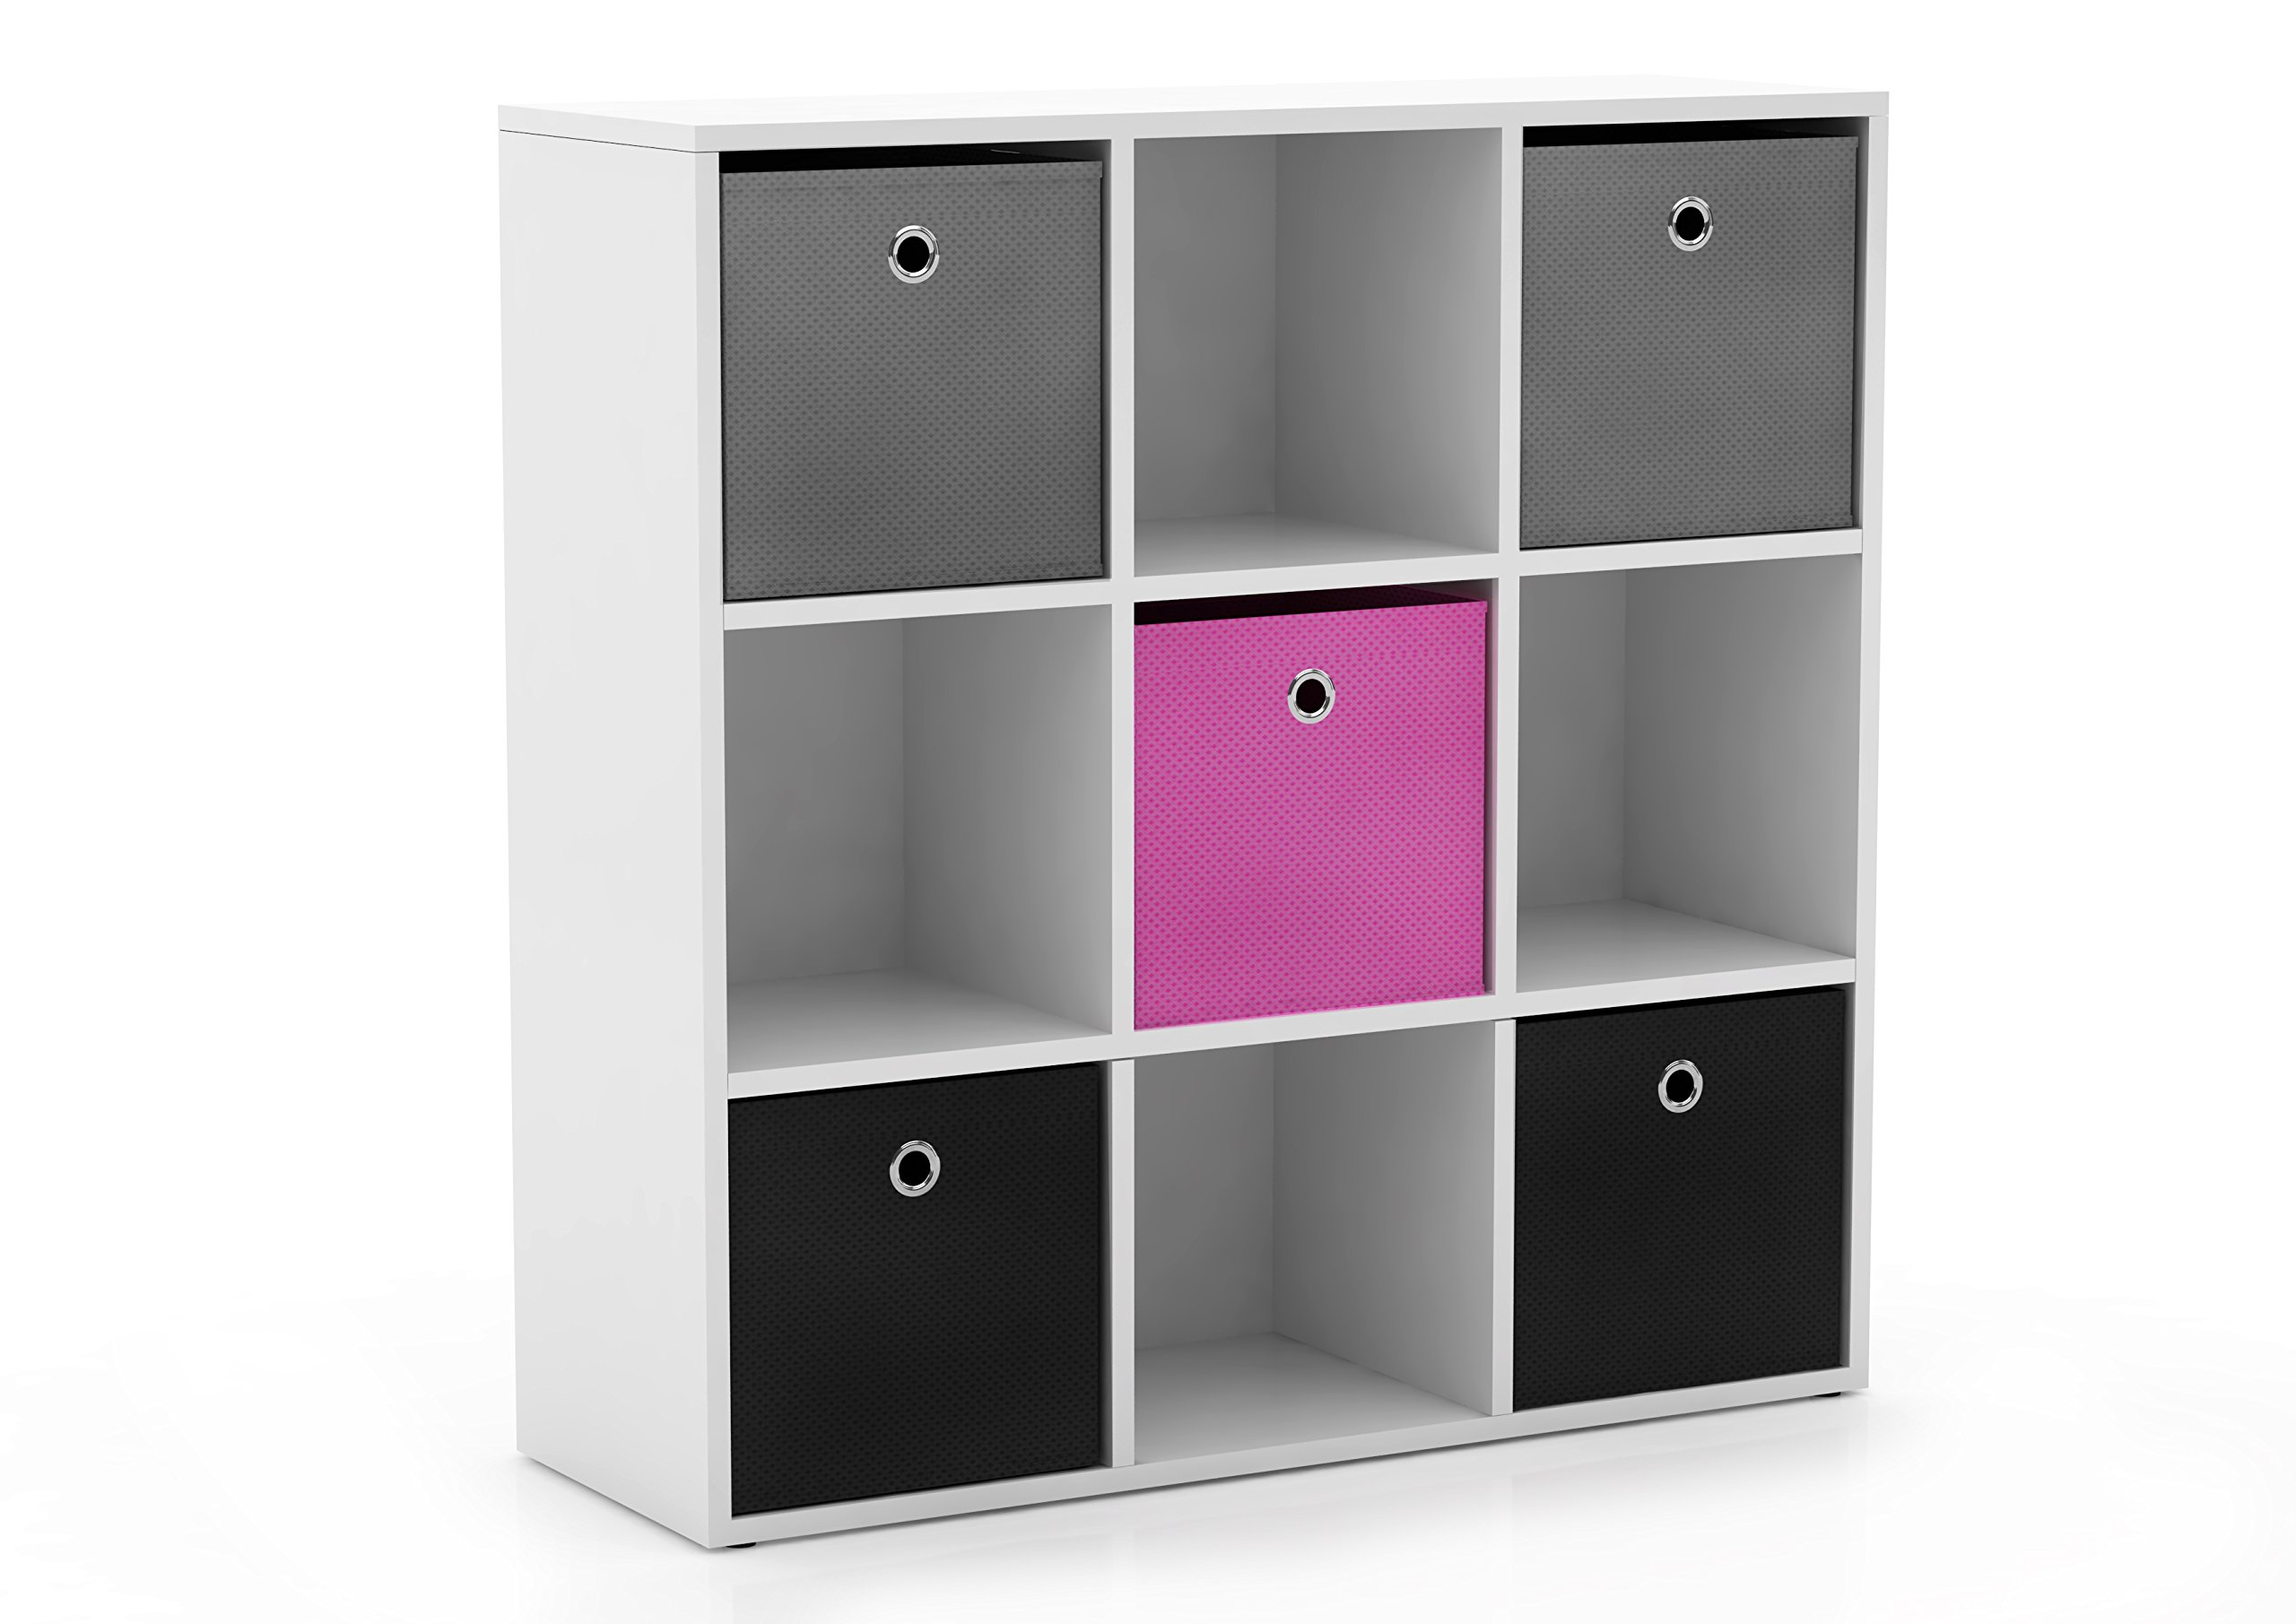 Target Marketing Systems Utility Collection Contemporary Bin Bookcase with Five Storage Bins and Four Cubbies, Designed for Unisex Bedroom, Gray/Pink/Black/White by Target Marketing Systems